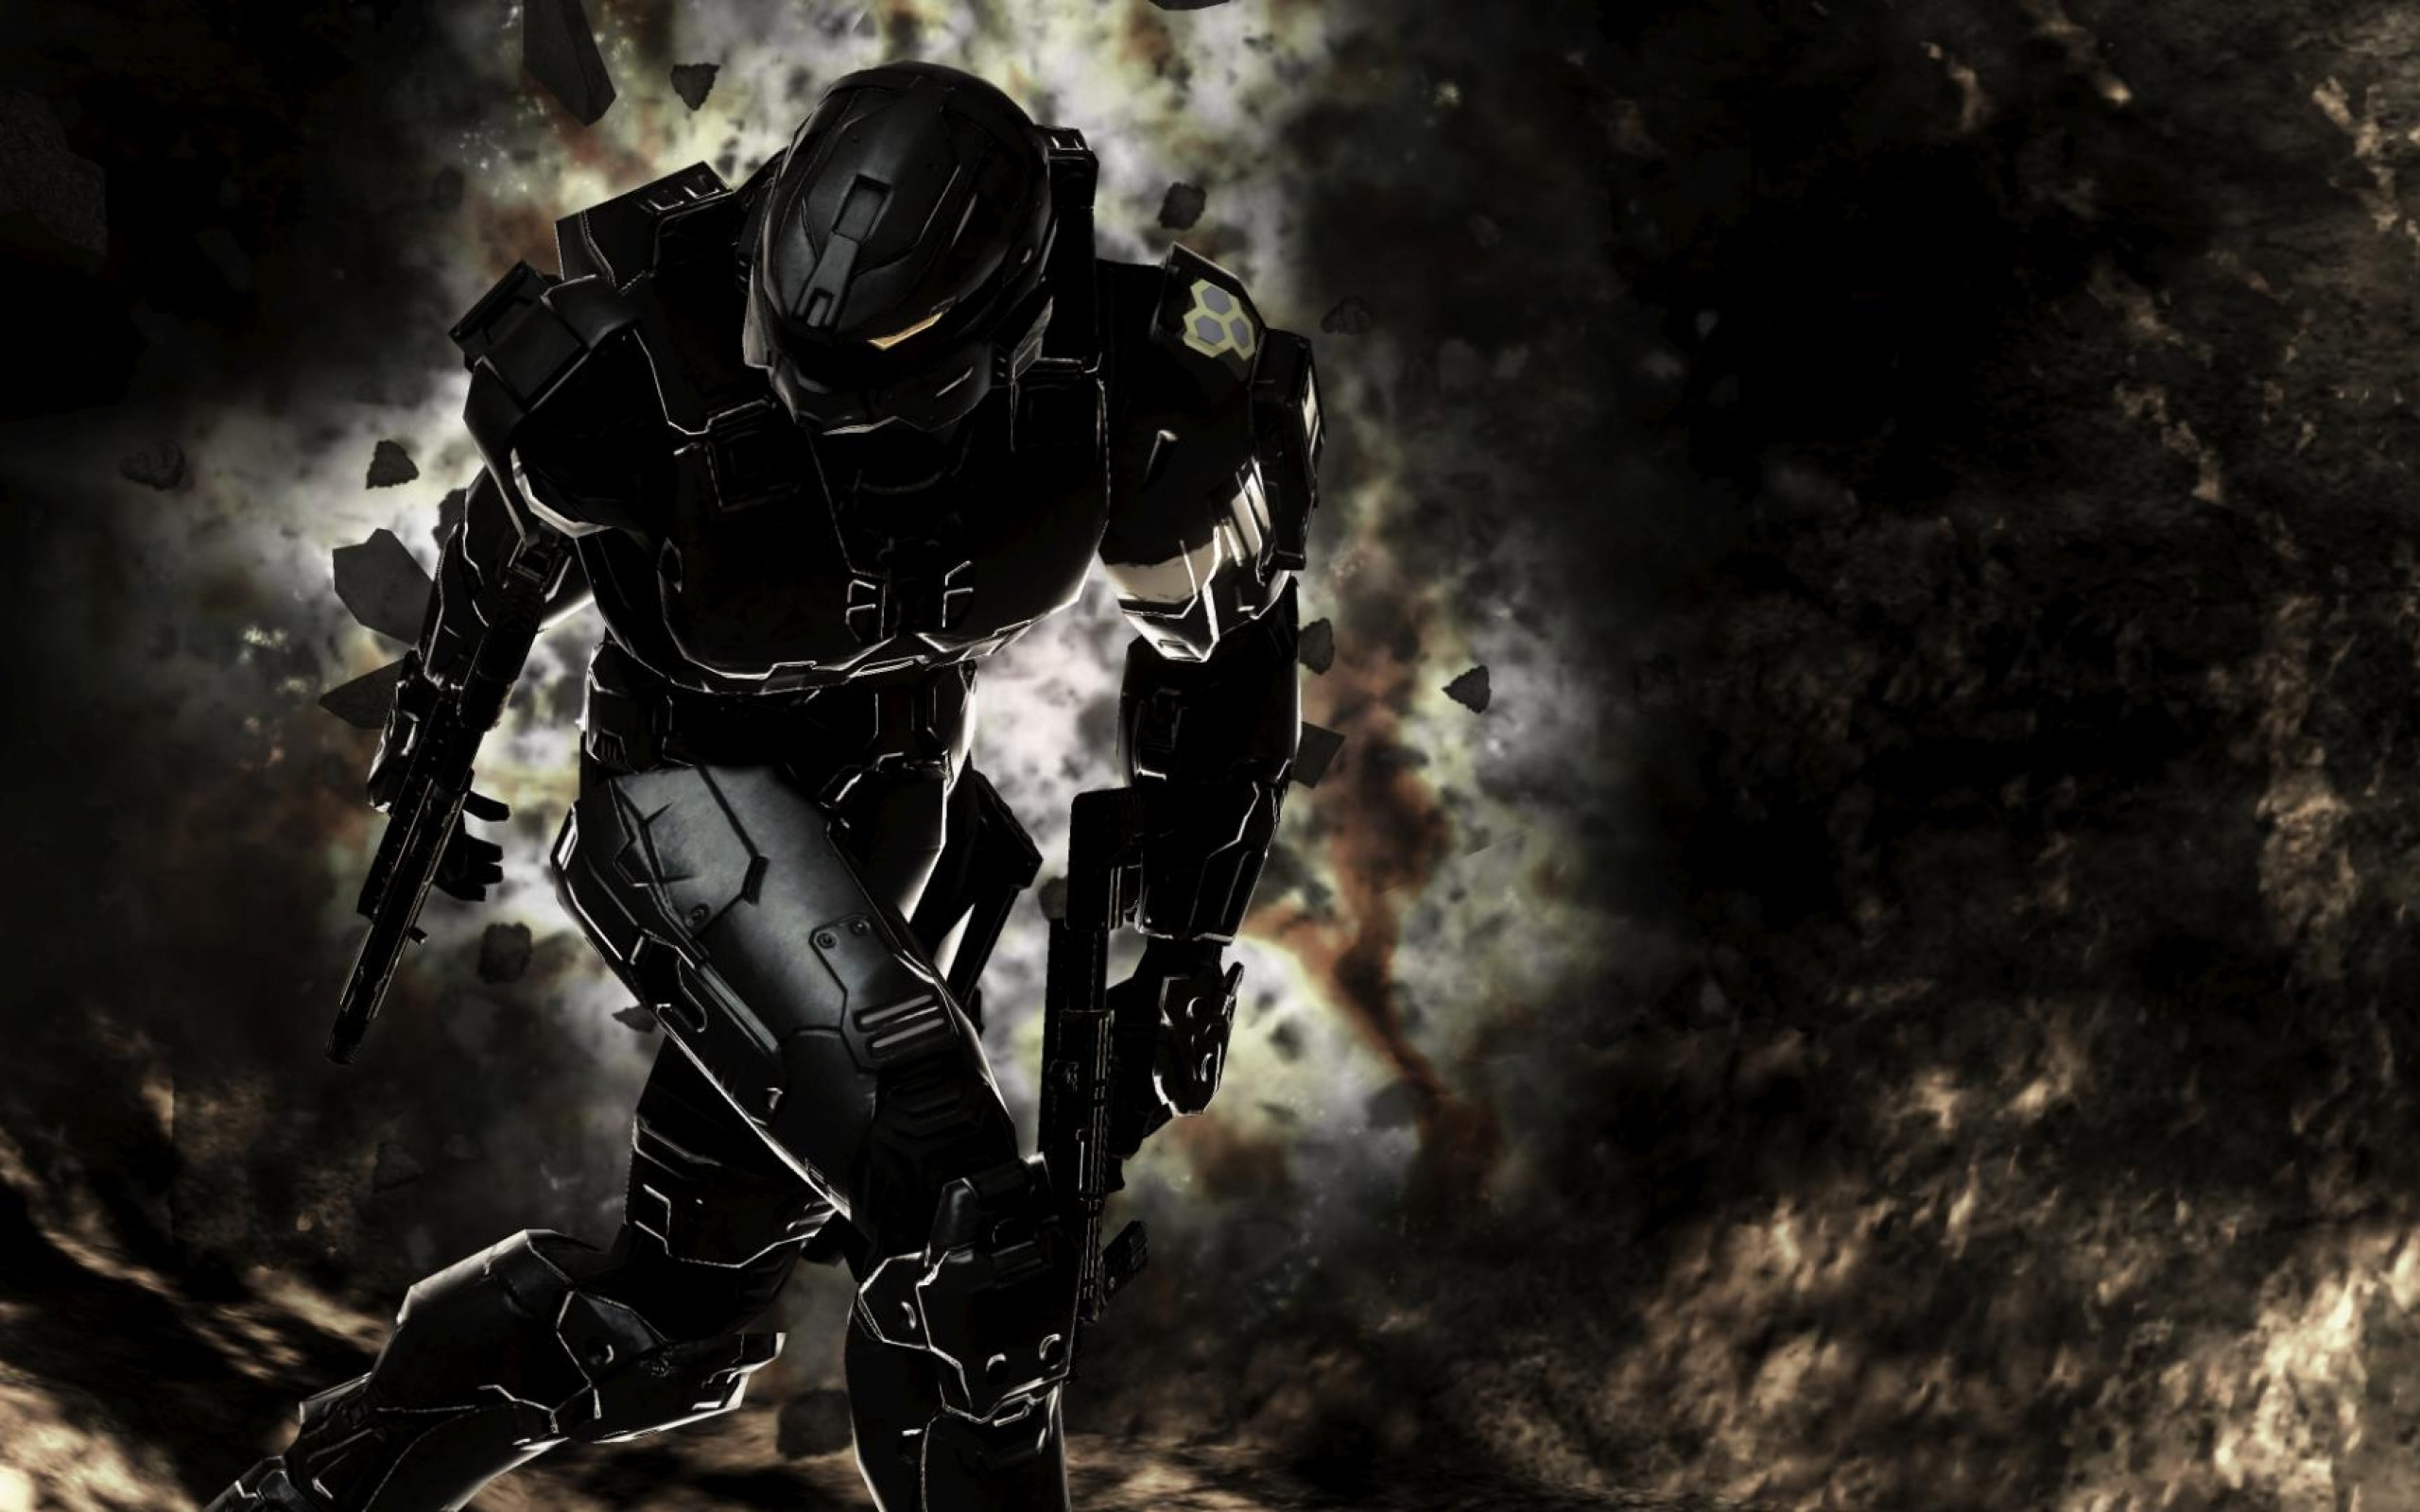 2560x1600 Halo, Master Chief, Video Games, Halo 3, Halo 3: ODST, Bungie Wallpapers HD  / Desktop and Mobile Backgrounds